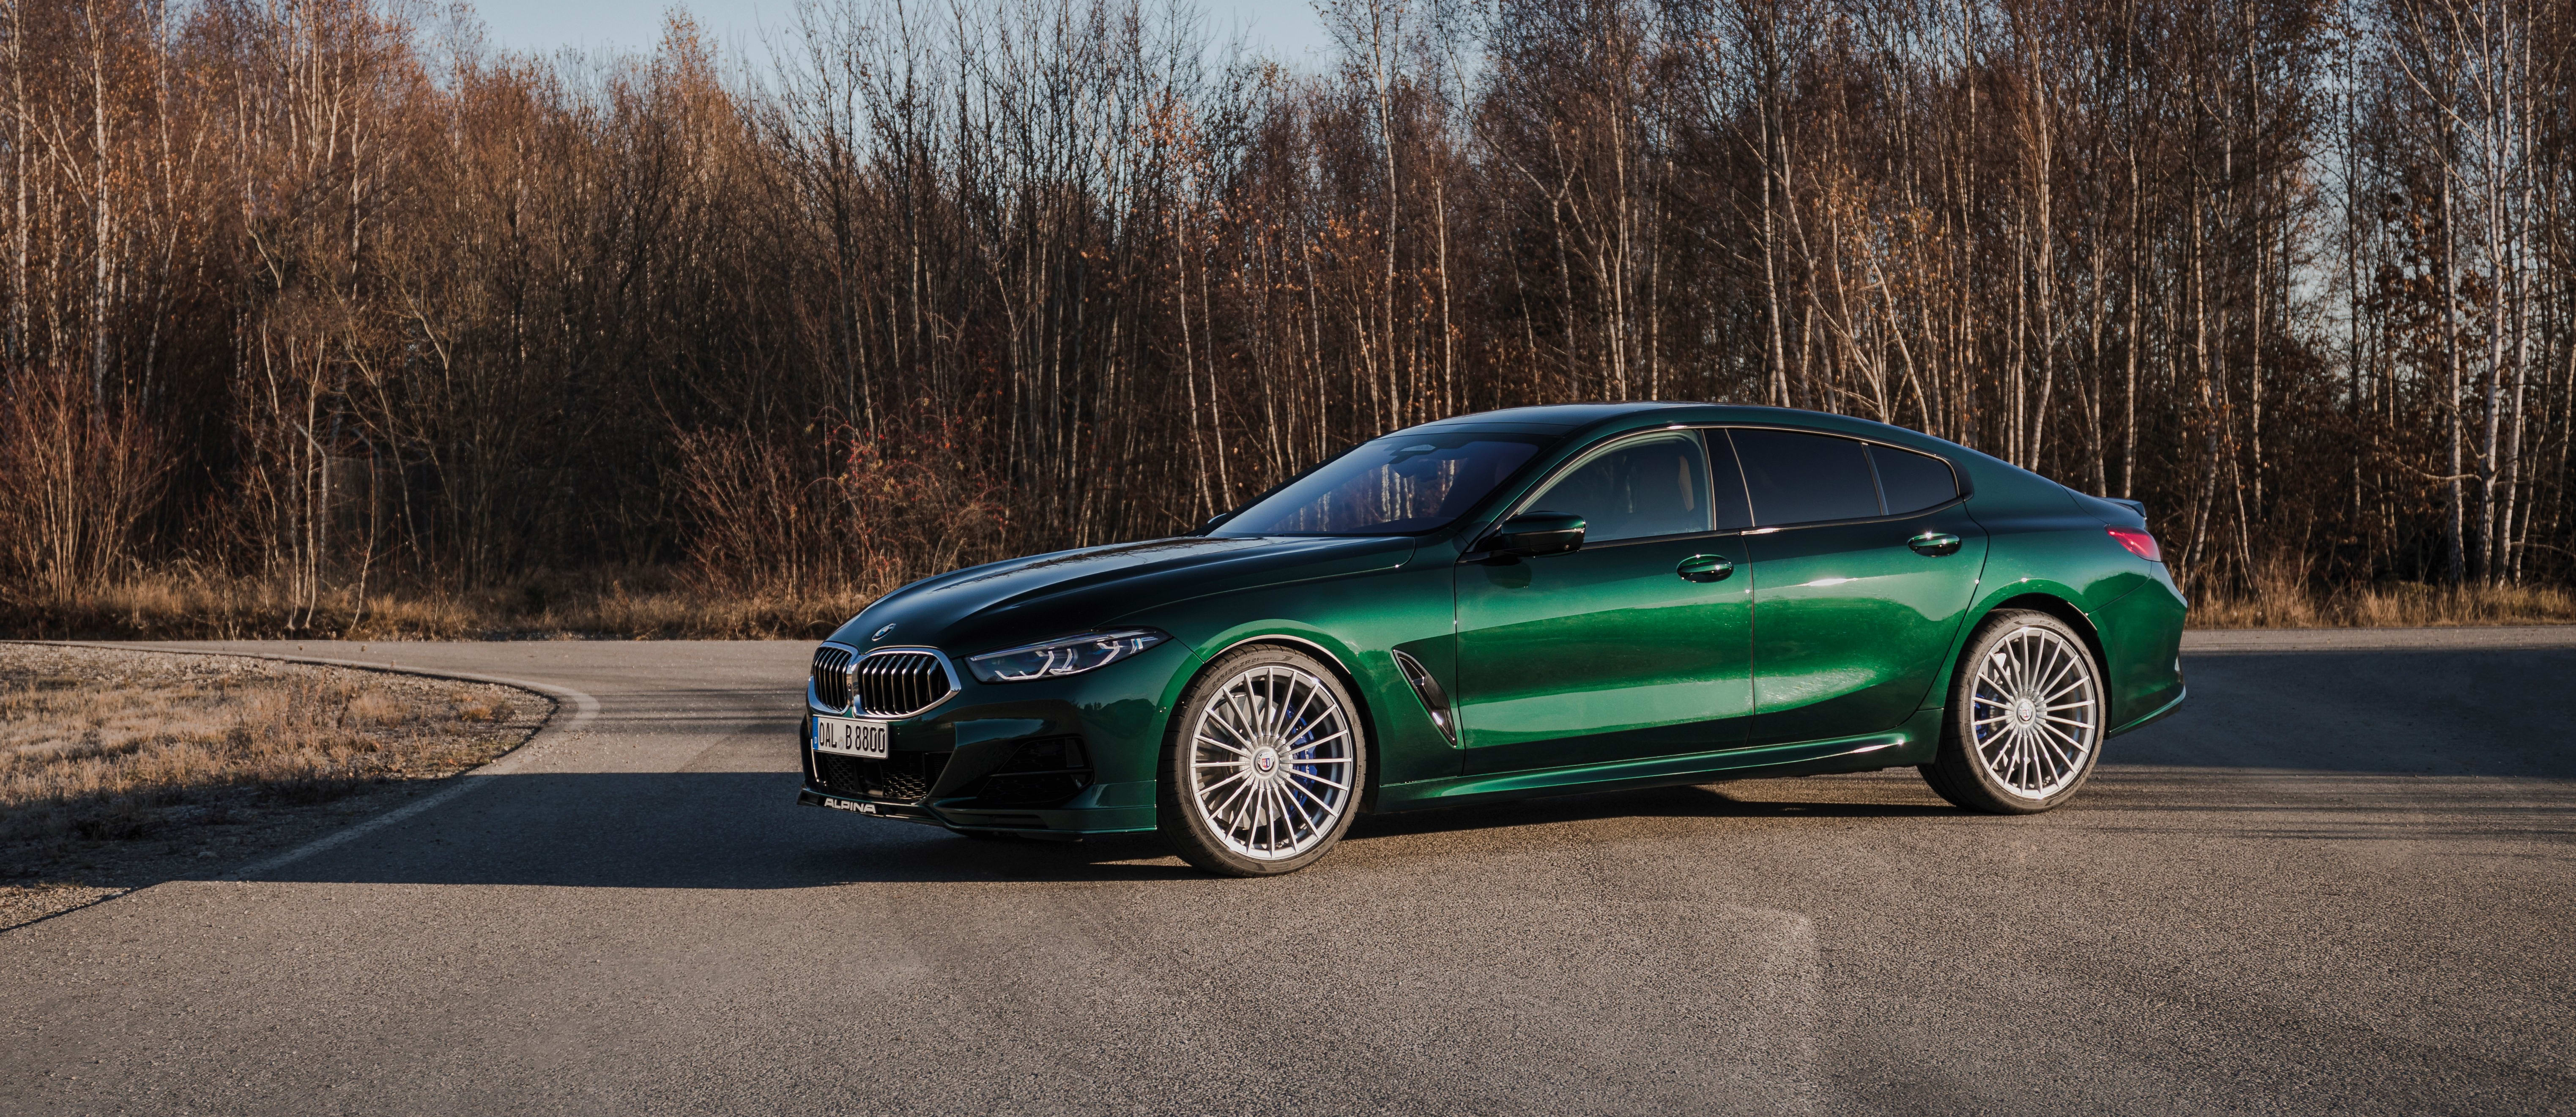 Alpina B8 Gran Coupe pricing revealed